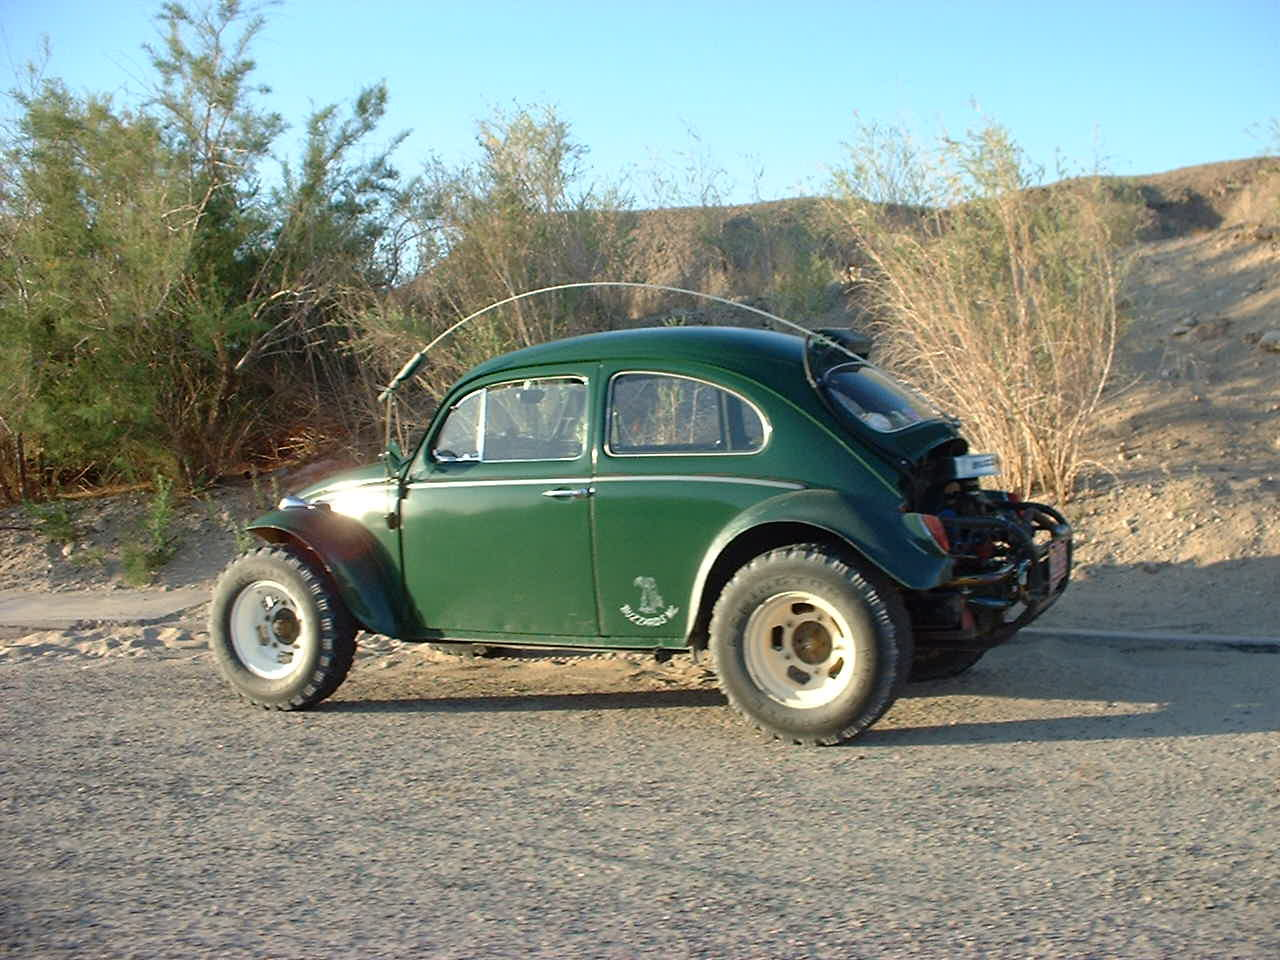 Converted VW Beetle